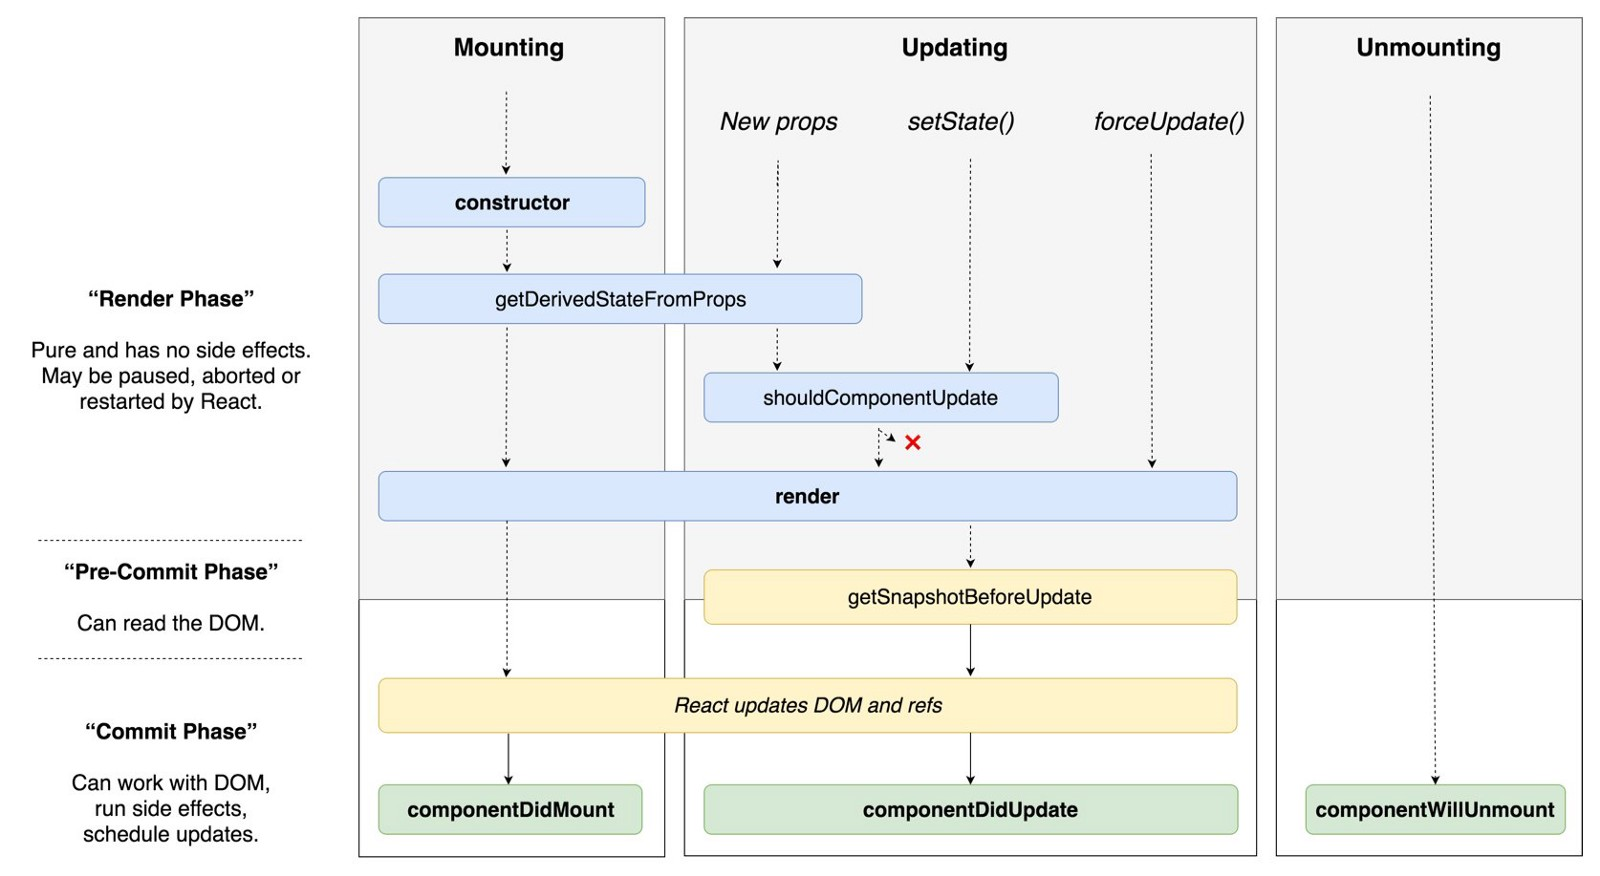 Understanding React 163 Component Life Cycle How The States Are Interrelated Is Shown In Statechart Diagram Summary Of New